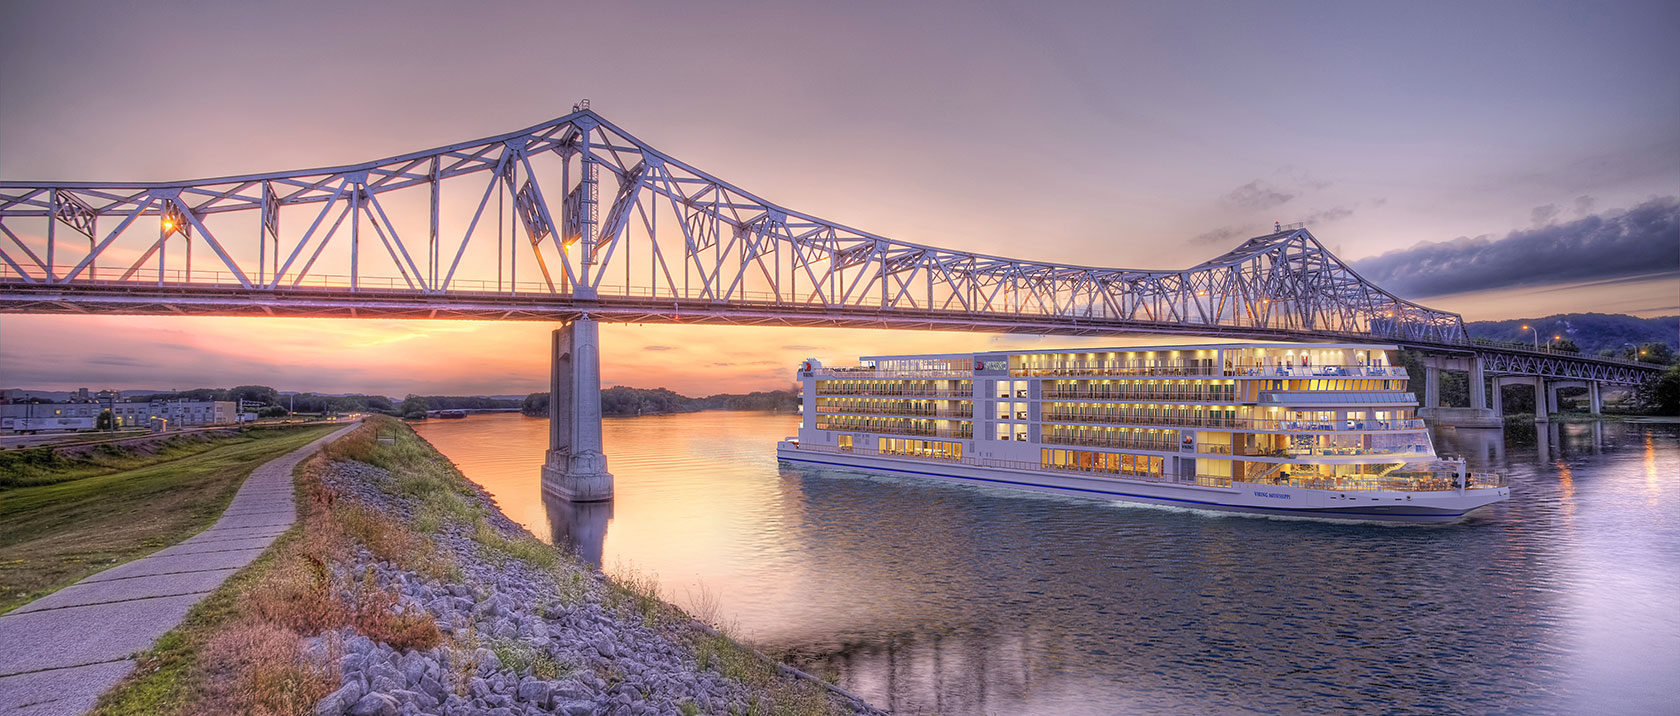 Edison Chouest To Build Viking River Cruise Boat